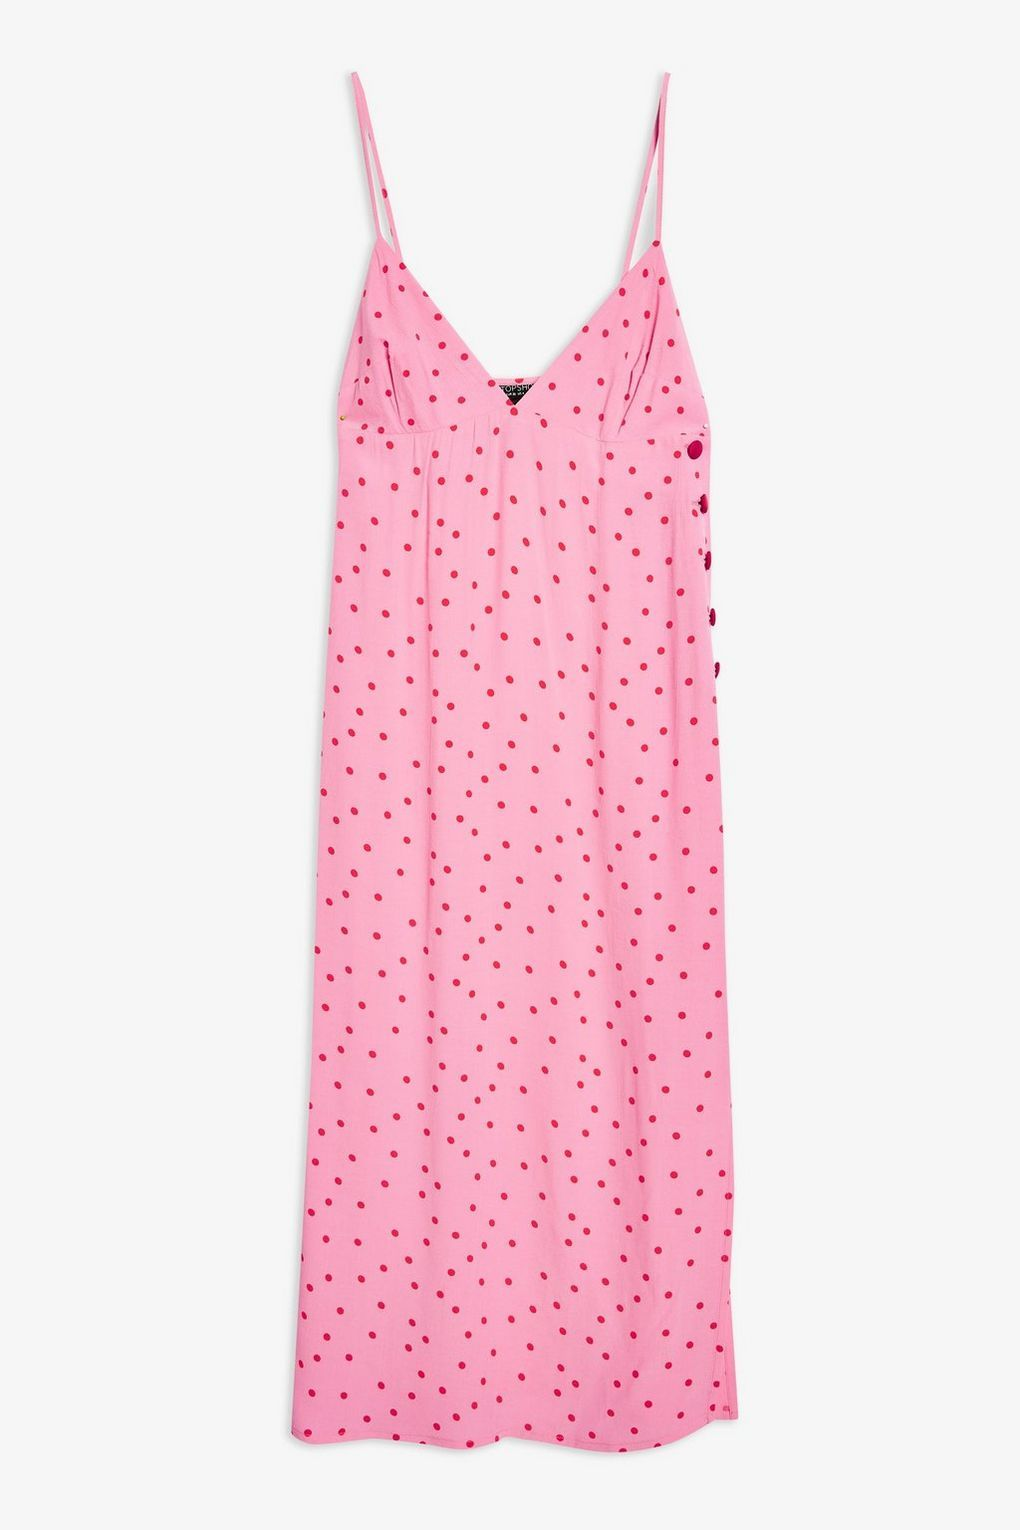 c0801582a712 Red and Pink Spot Slip Dress - Dresses - Clothing - Topshop